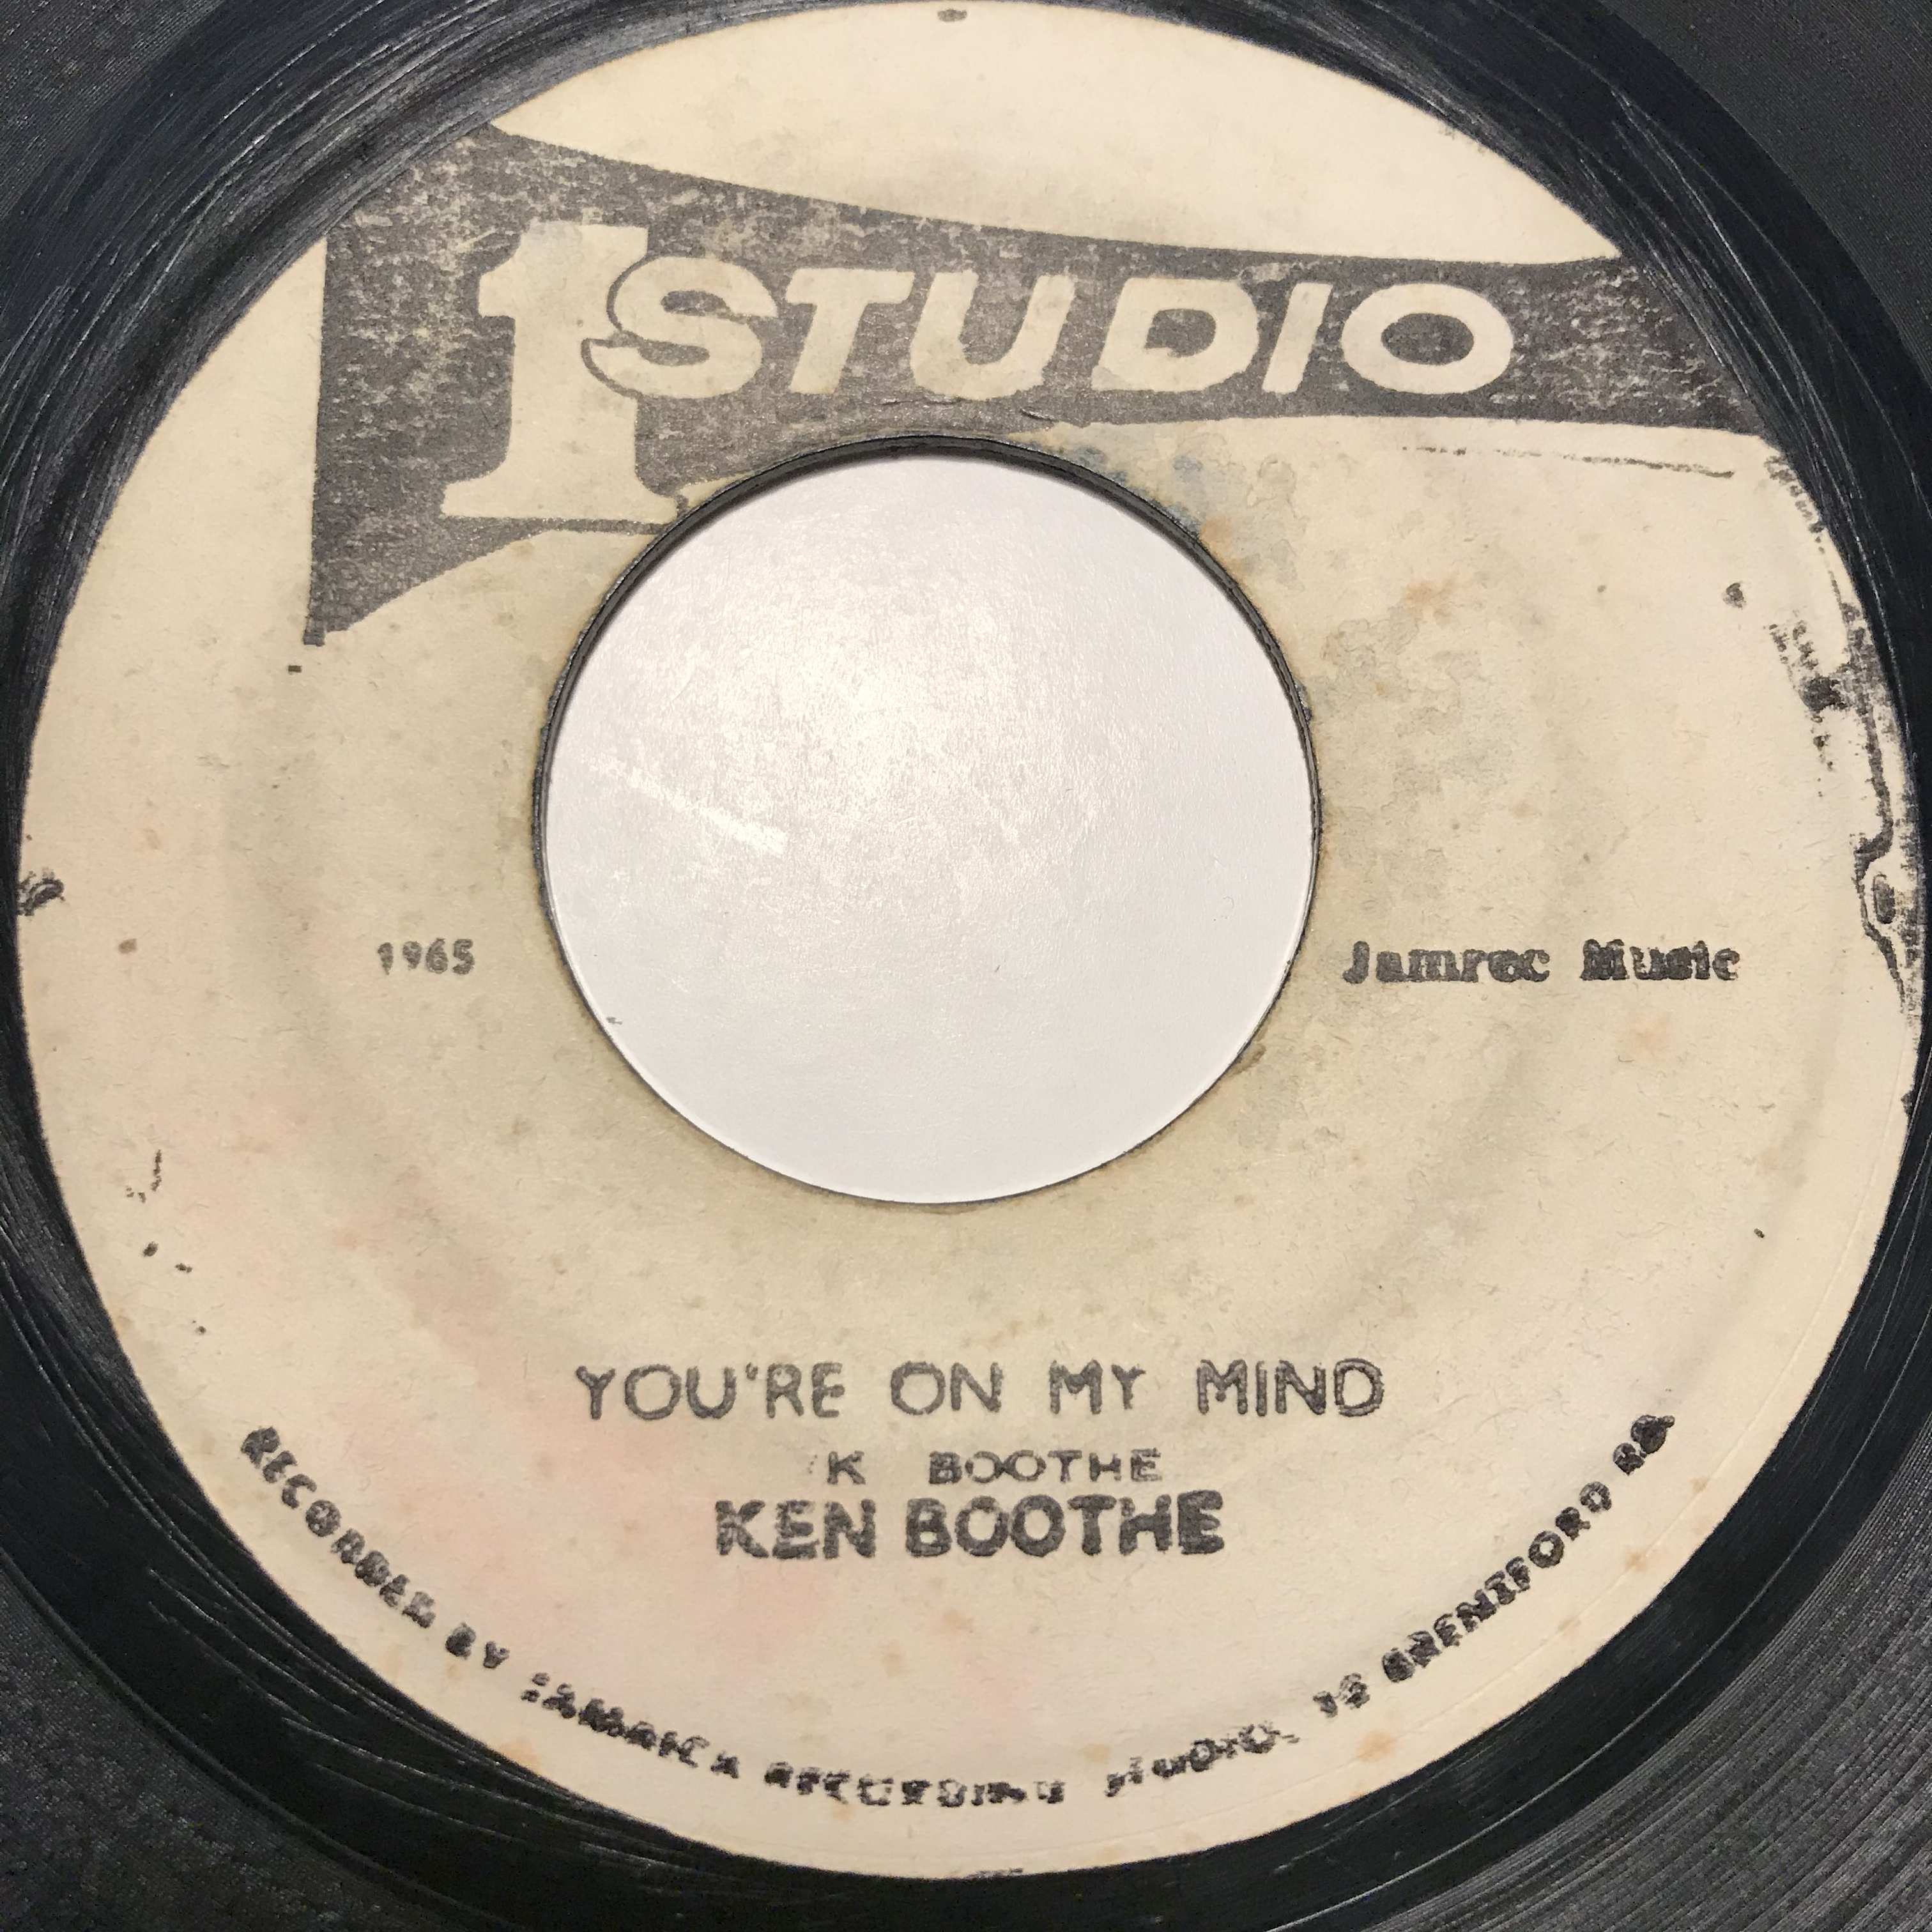 Ken Boothe - You're On My Mind【7-10862】